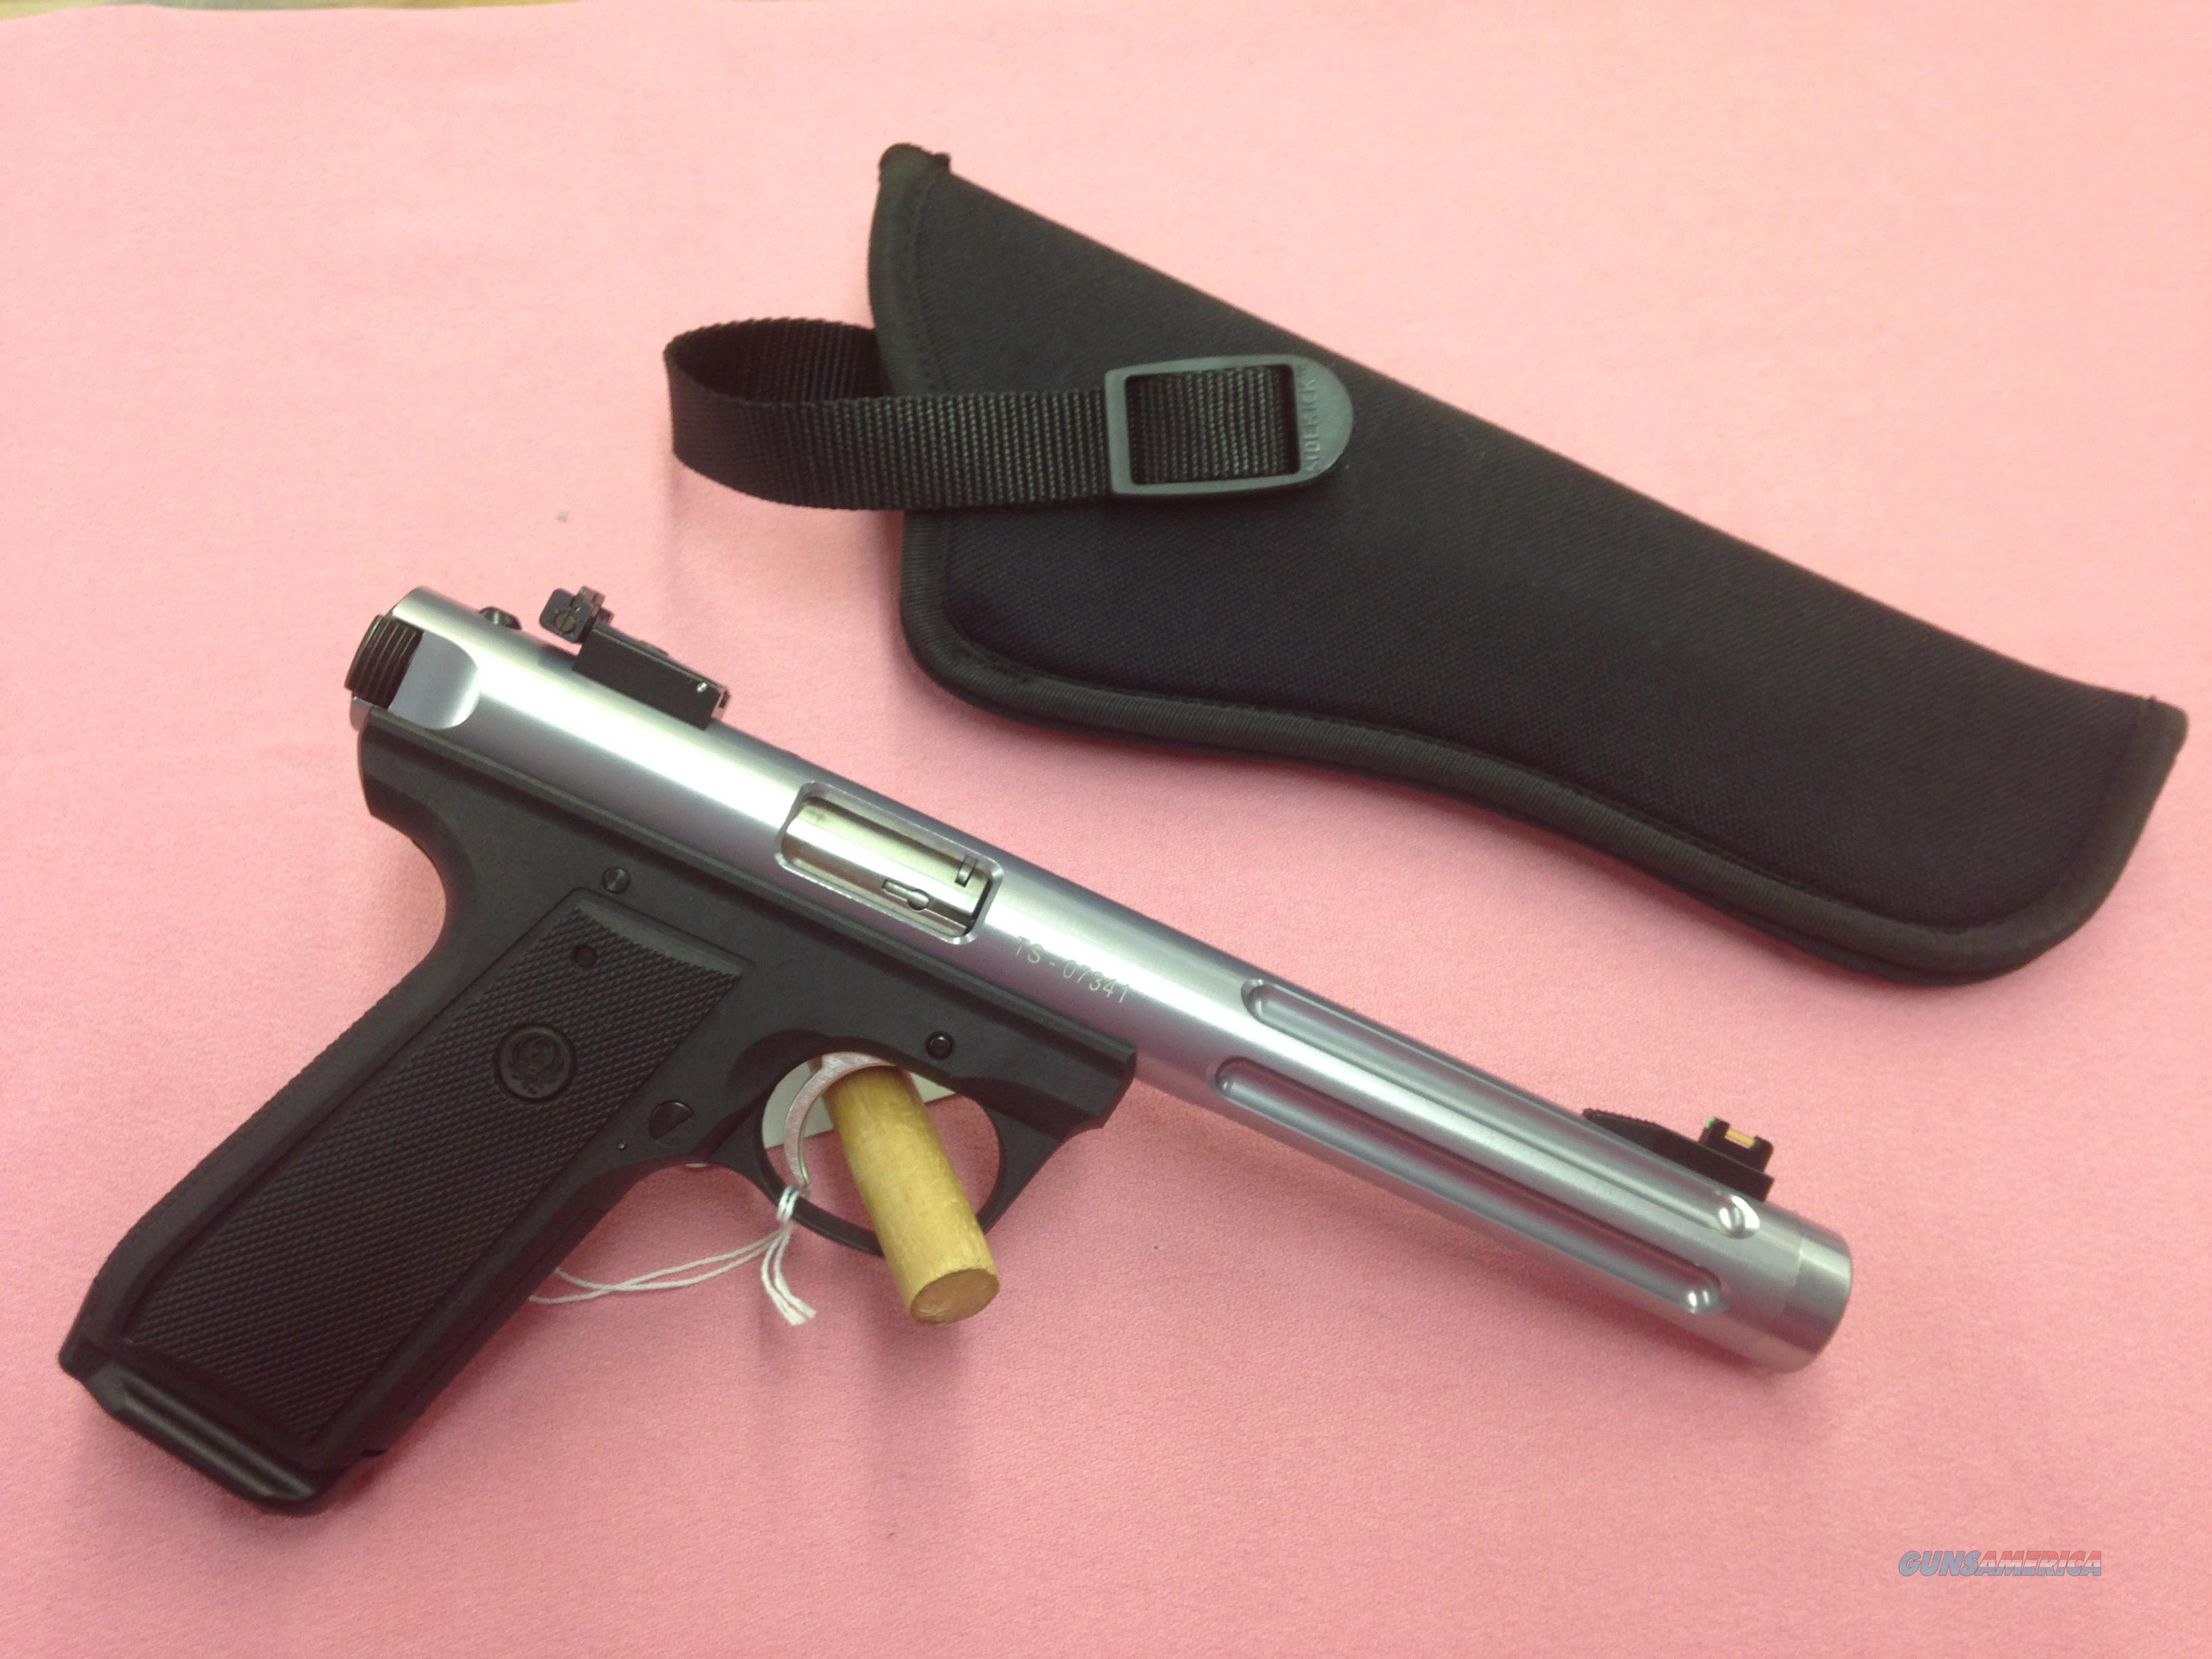 Ruger 22/45 with tactical solutions upper  Guns > Pistols > Ruger Semi-Auto Pistols > 22/45